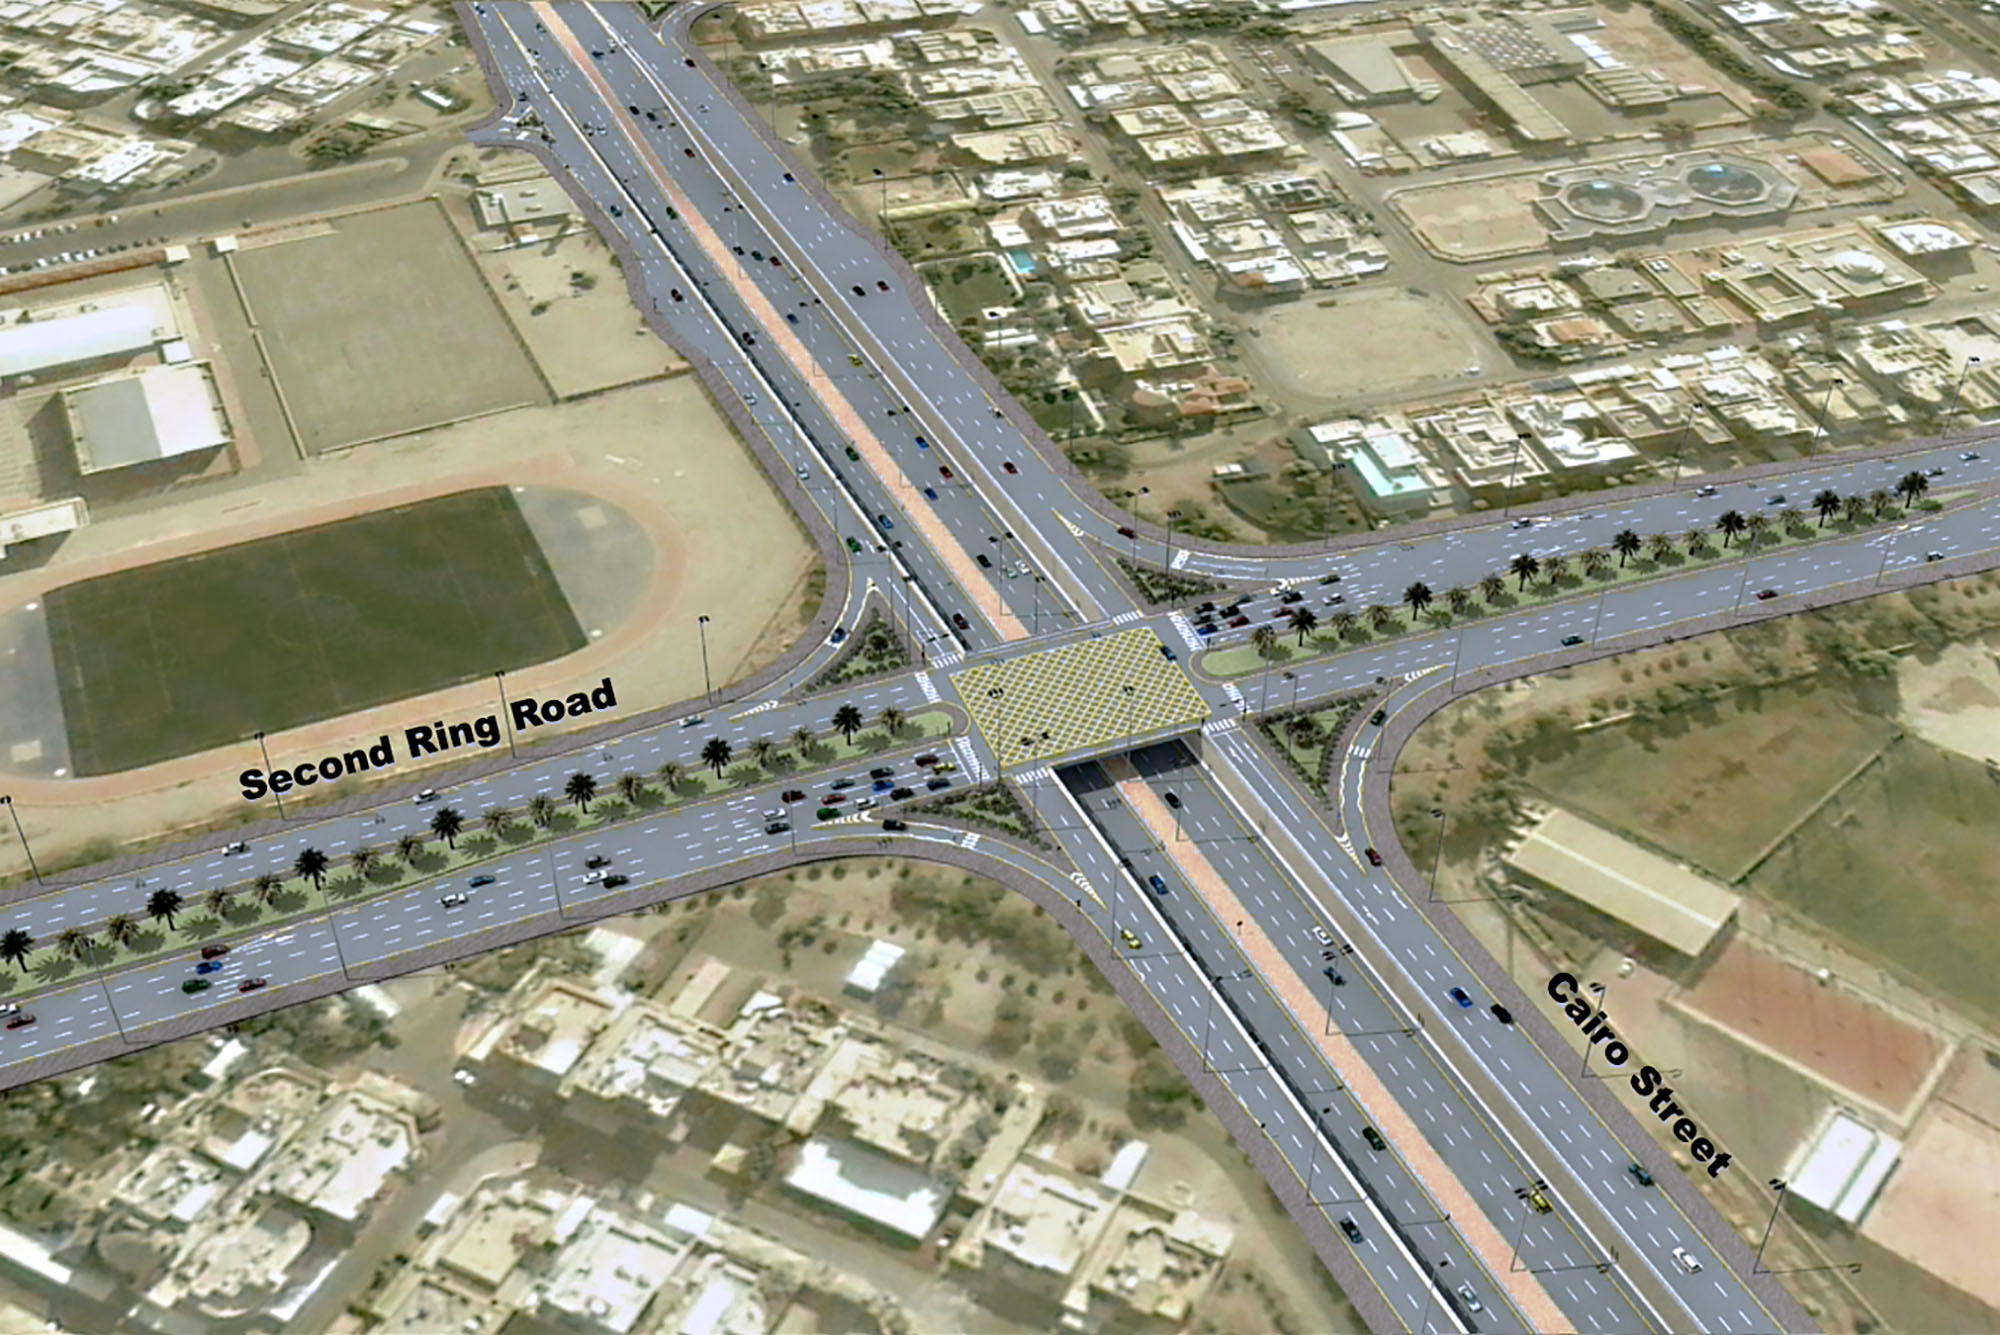 Upgrading of 2nd and 3rd ring road